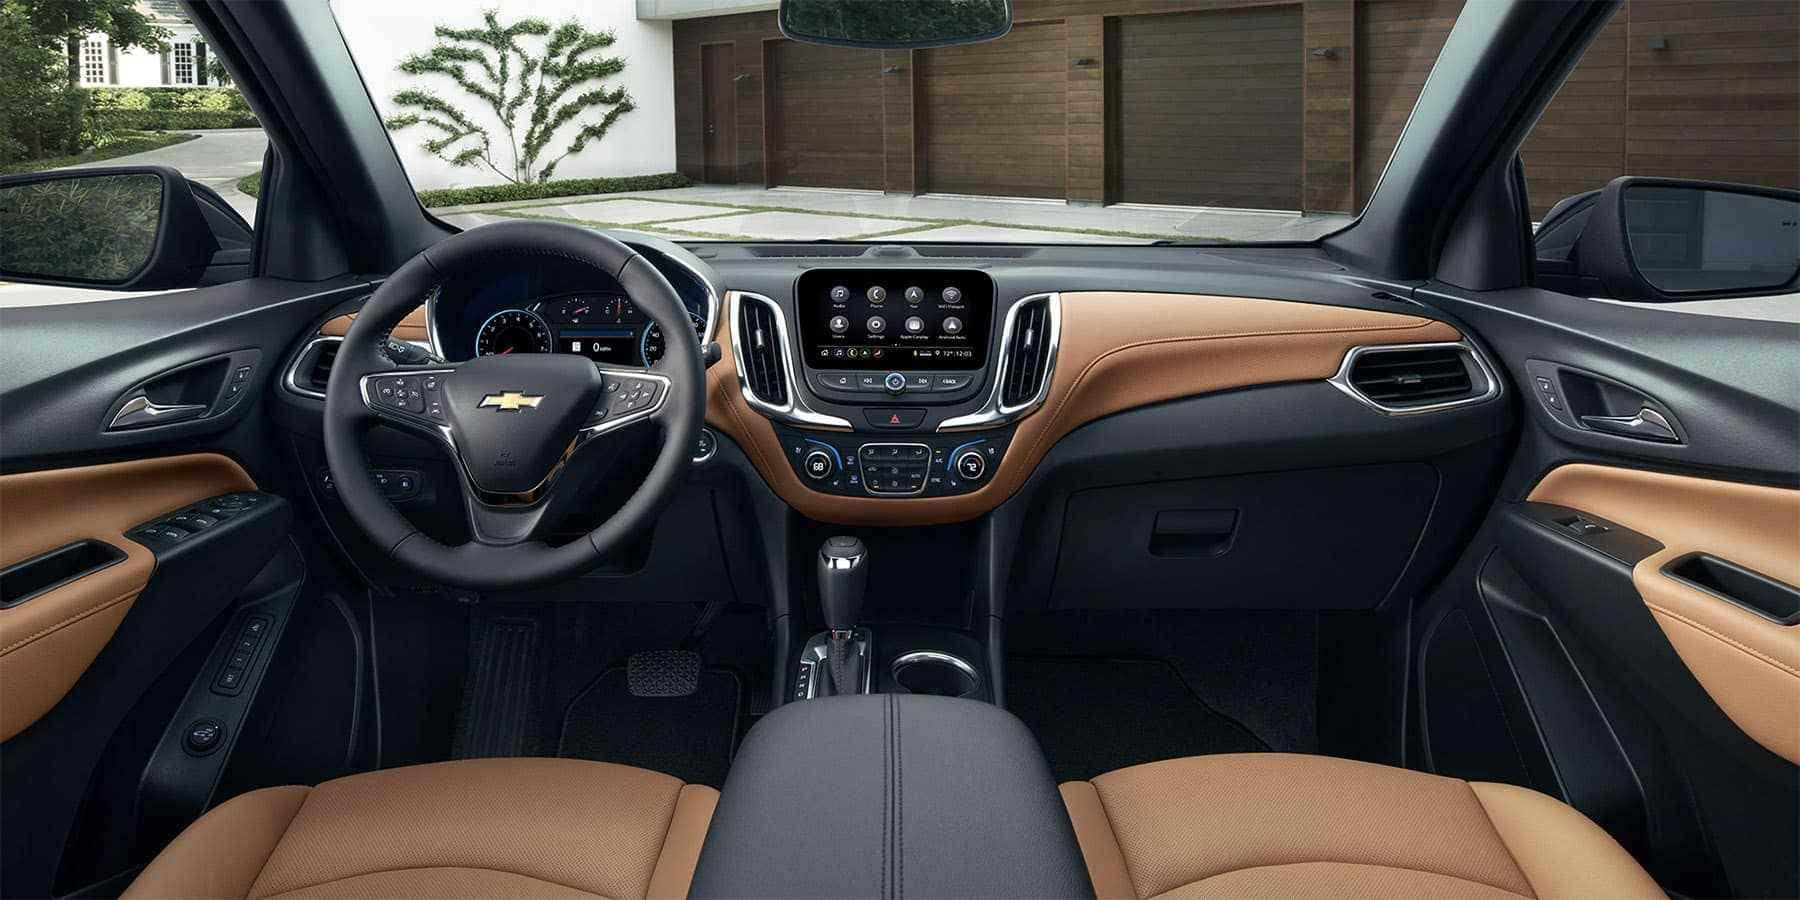 2020-Chevrolet-Equinox-front-interior-seating (1)